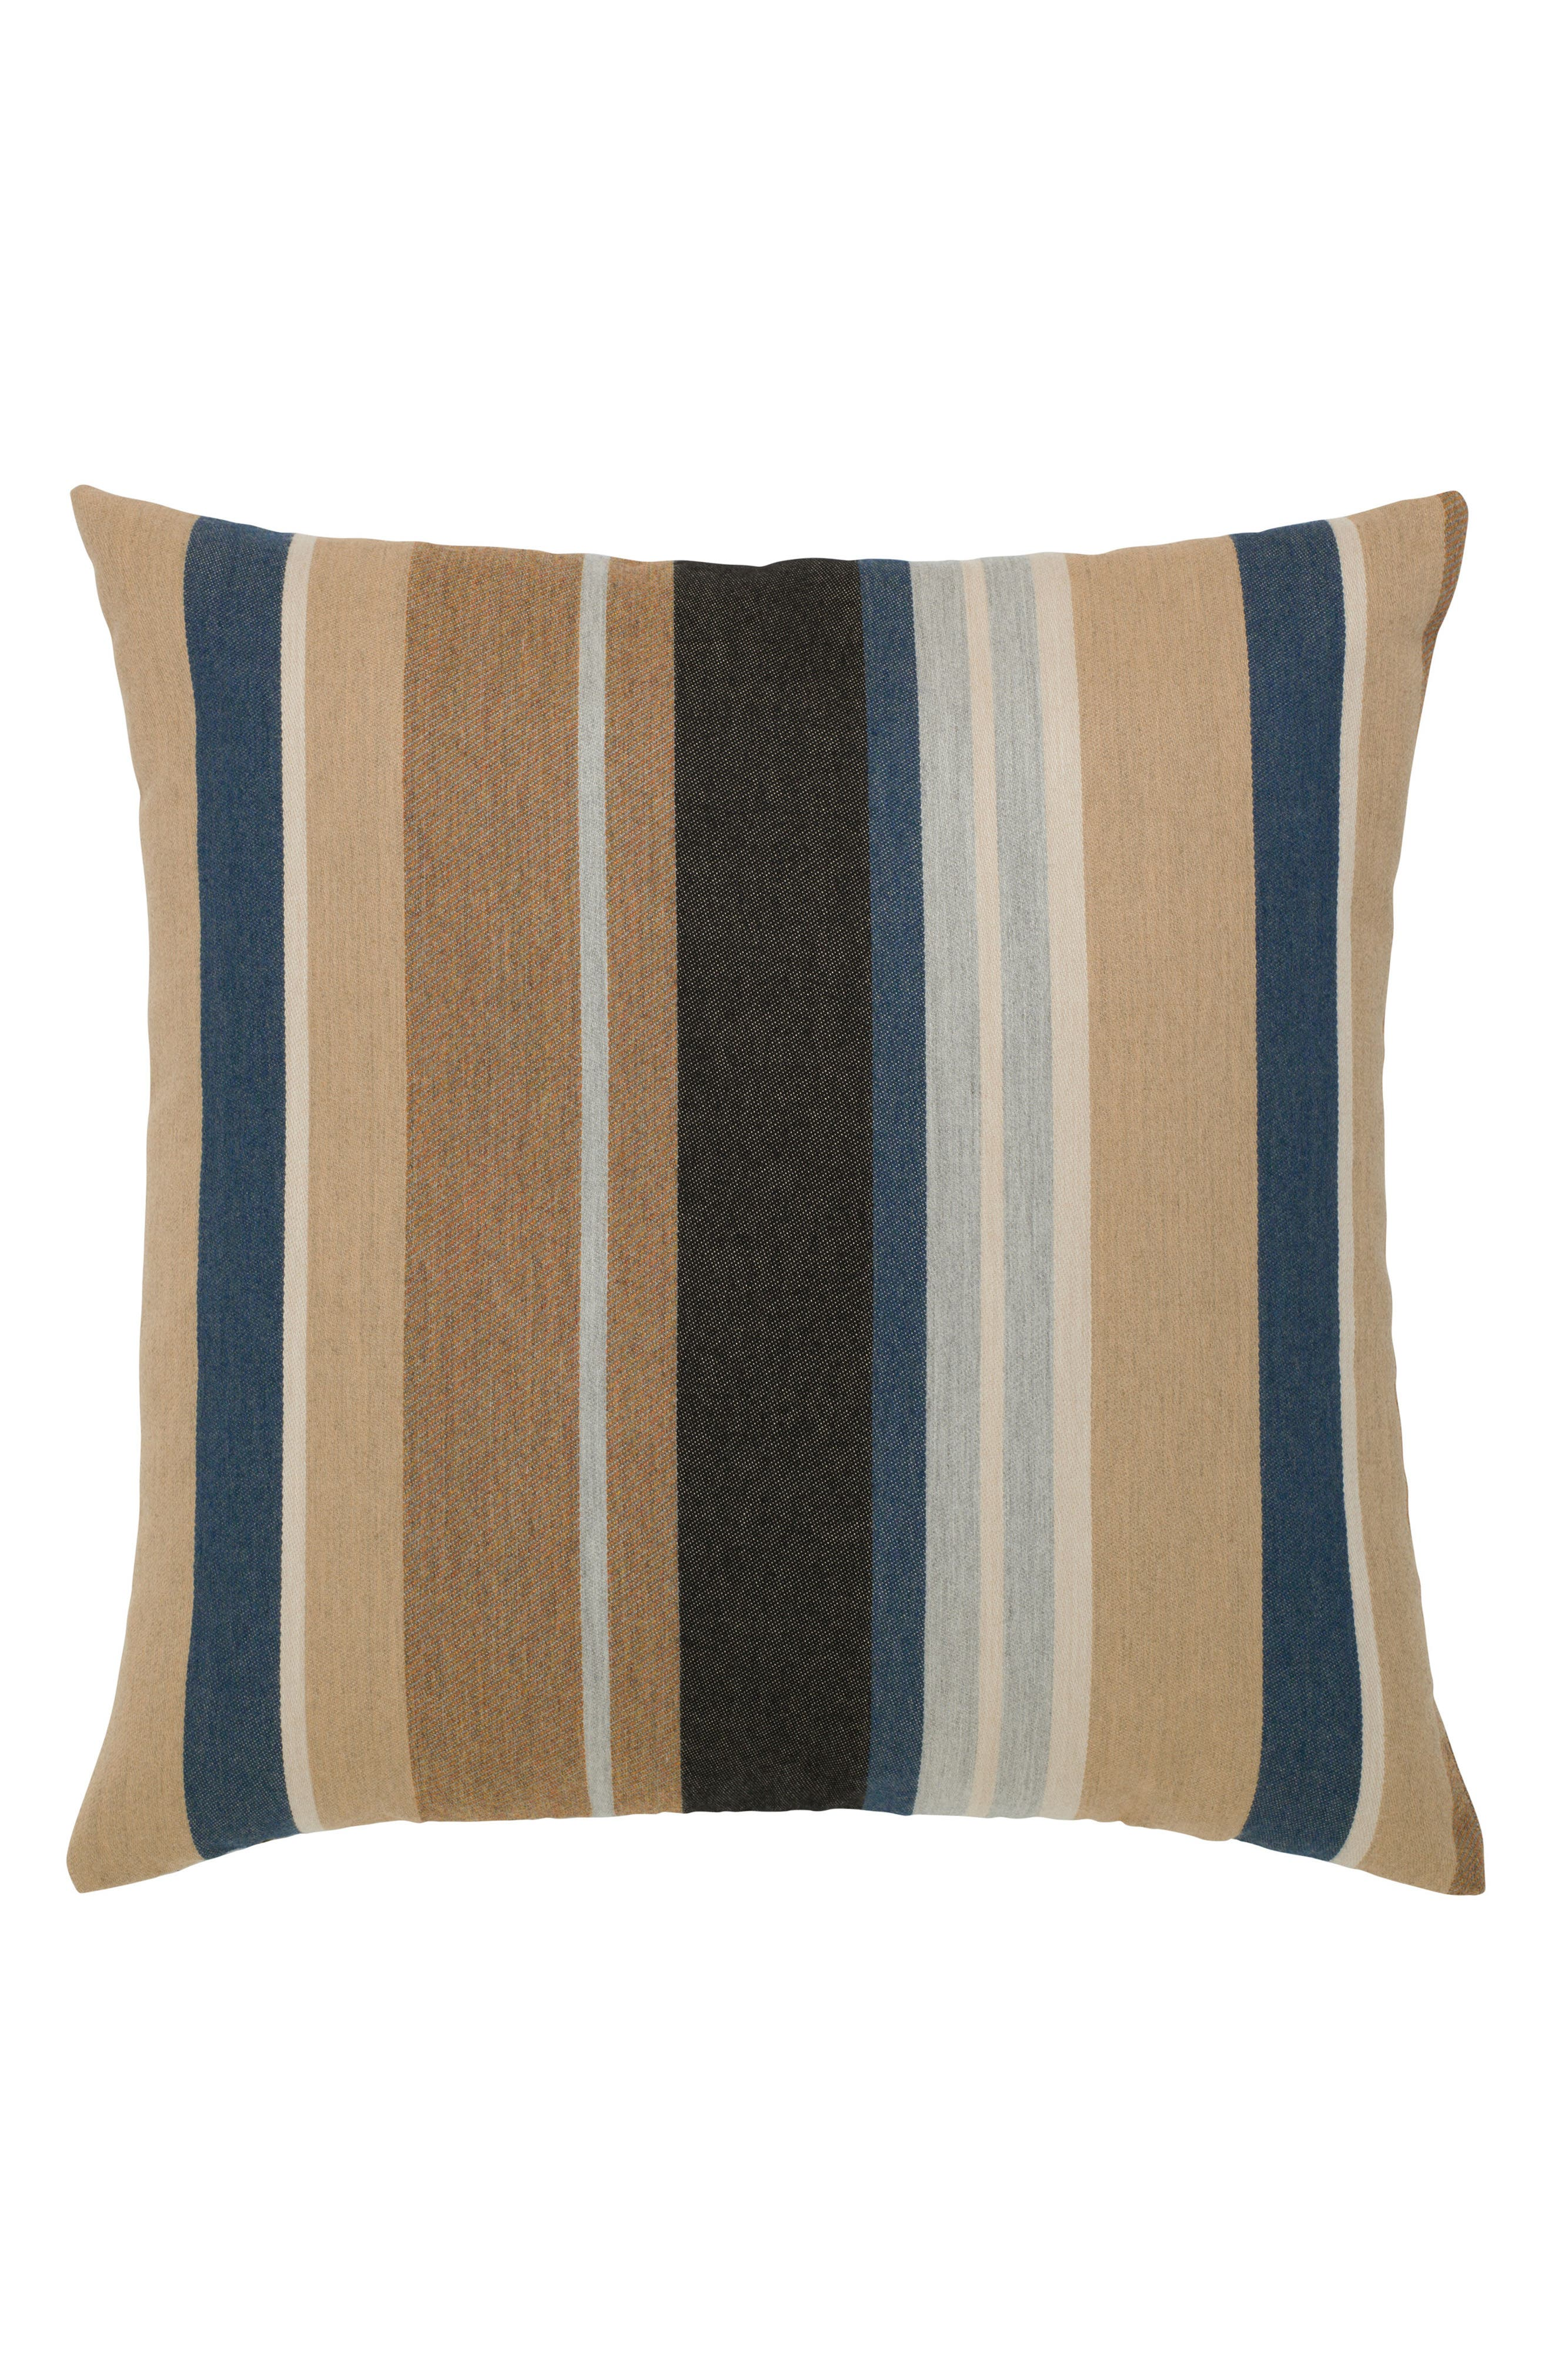 Reflection Indoor/Outdoor Accent Pillow,                             Main thumbnail 1, color,                             200